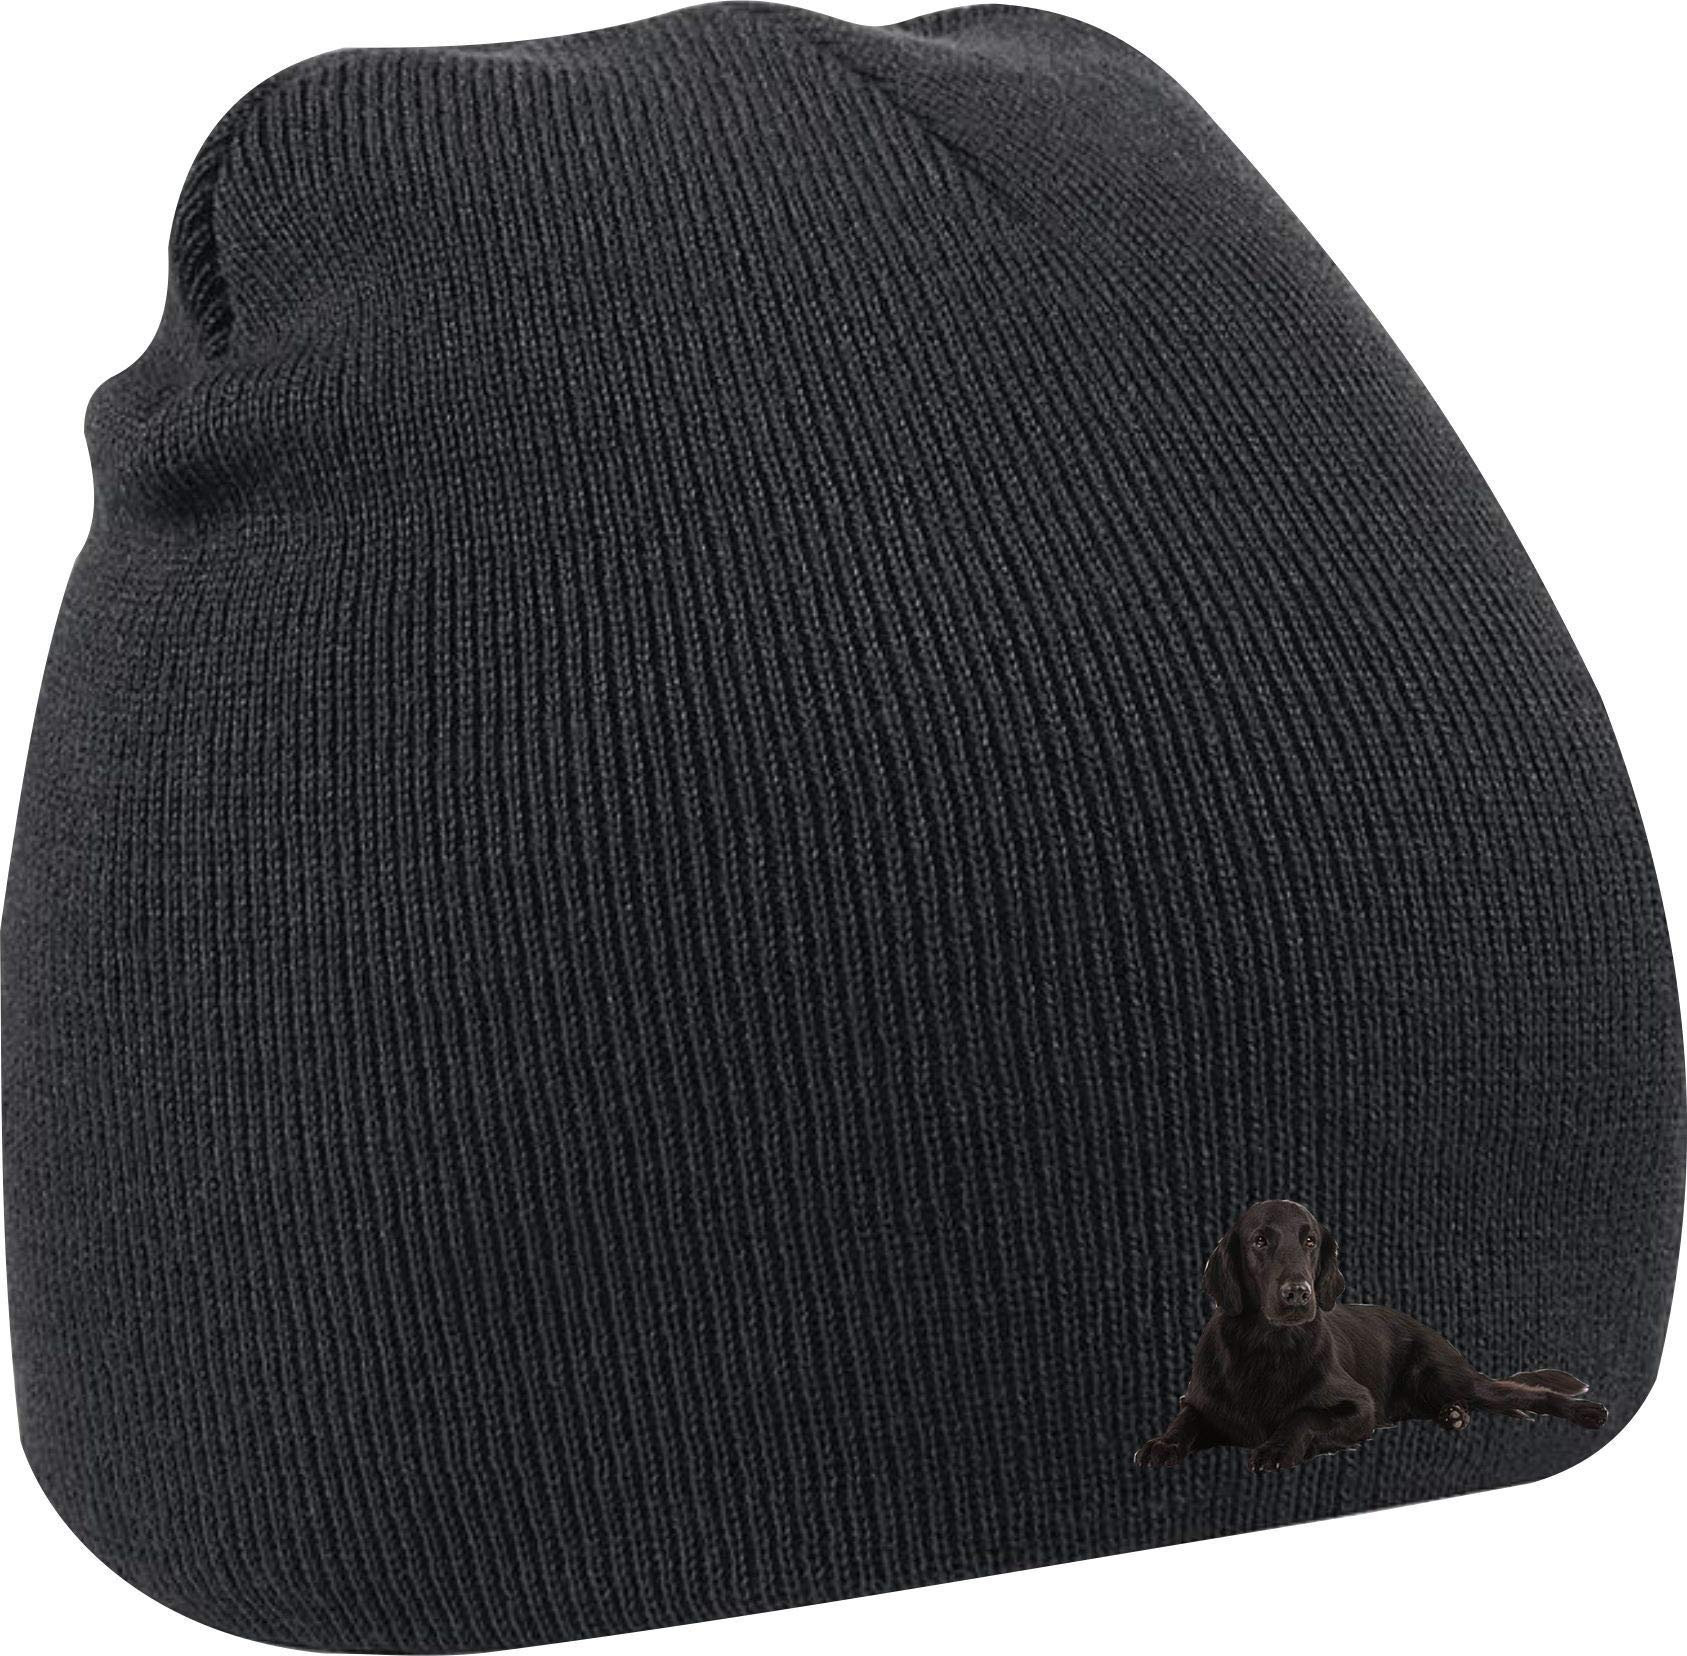 Taurus Clothing Flat-Coated Retriever Dog Personalised Embroidered Beanie Black